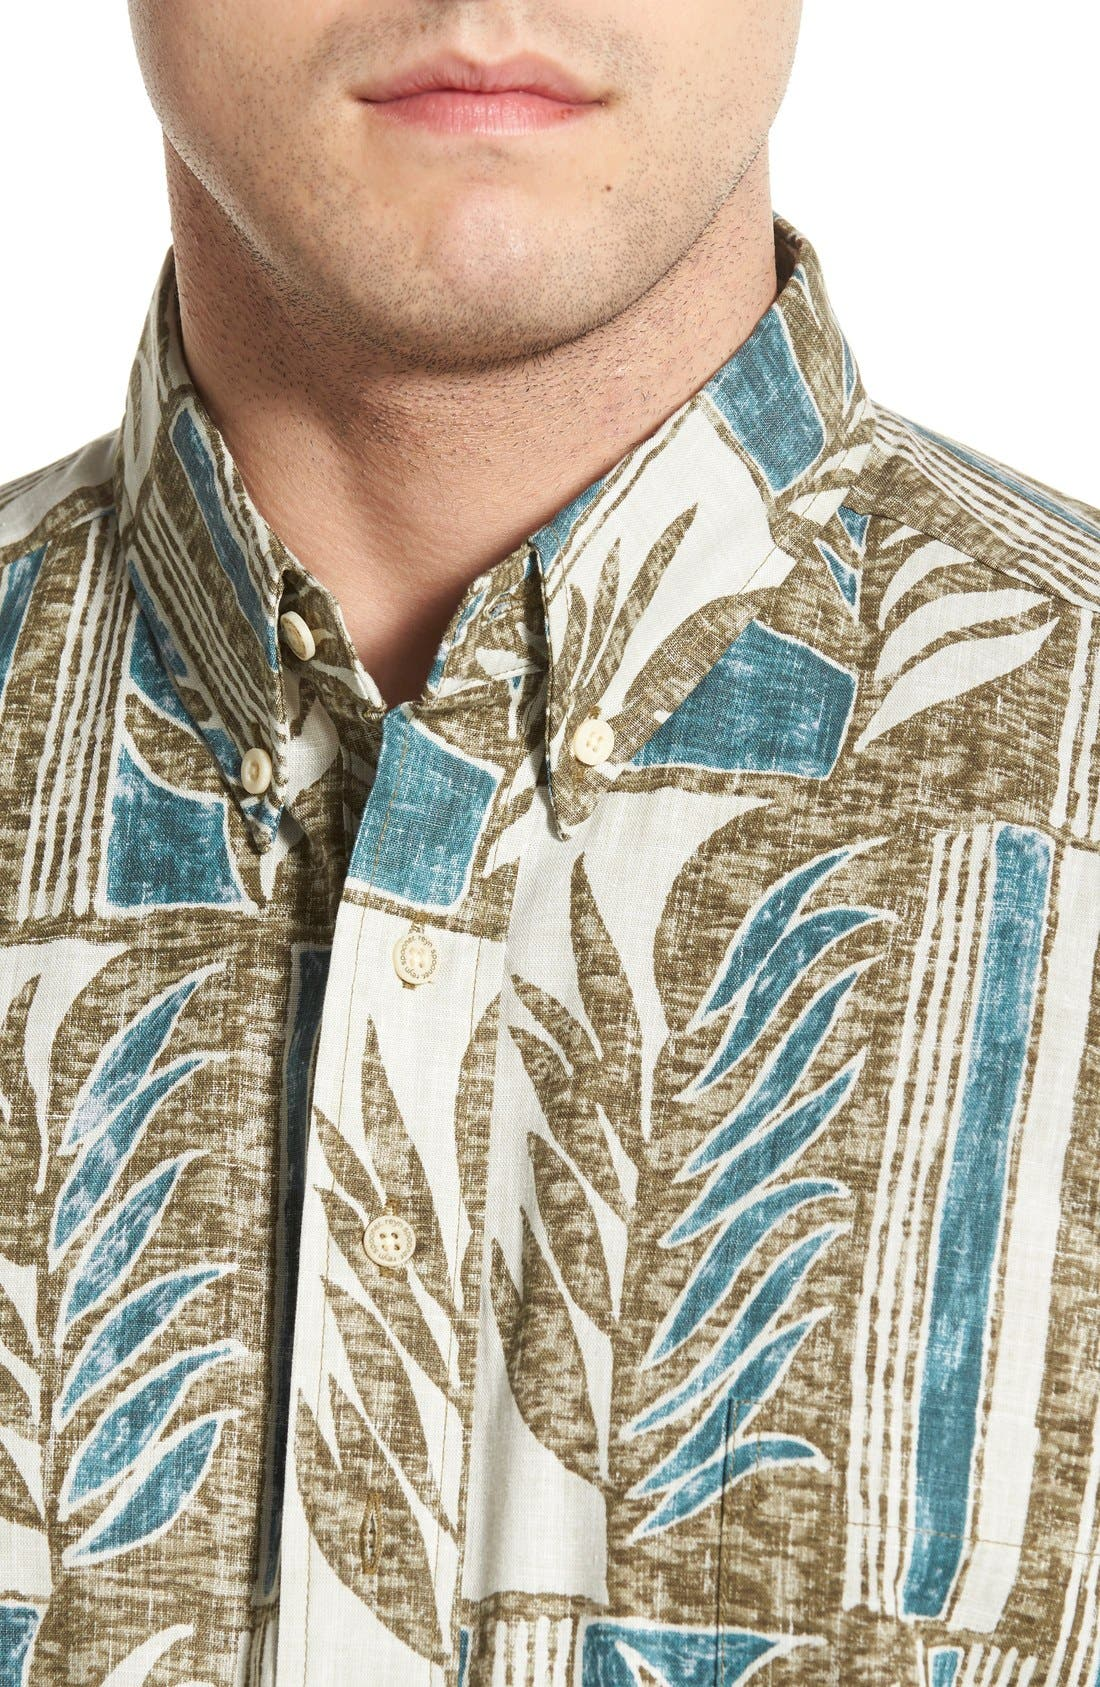 REYN SPOONER,                             'Lau Palaka' Classic Fit Wrinkle Free Pullover Shirt,                             Alternate thumbnail 4, color,                             321